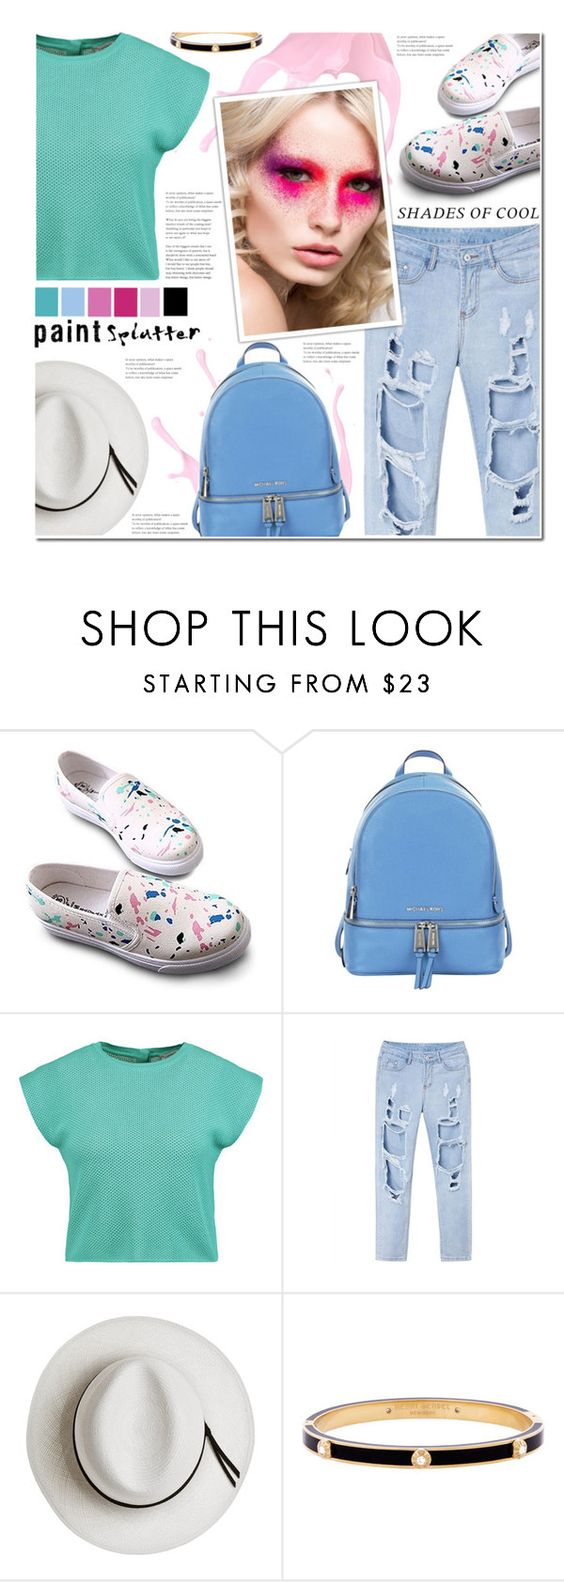 """""""Making a Splash With Paint Splatter"""" by anna-anica ❤ liked on Polyvore featuring MICHAEL Michael Kors, Vionnet, Calypso Private Label, Henri Bendel and paintsplatter"""